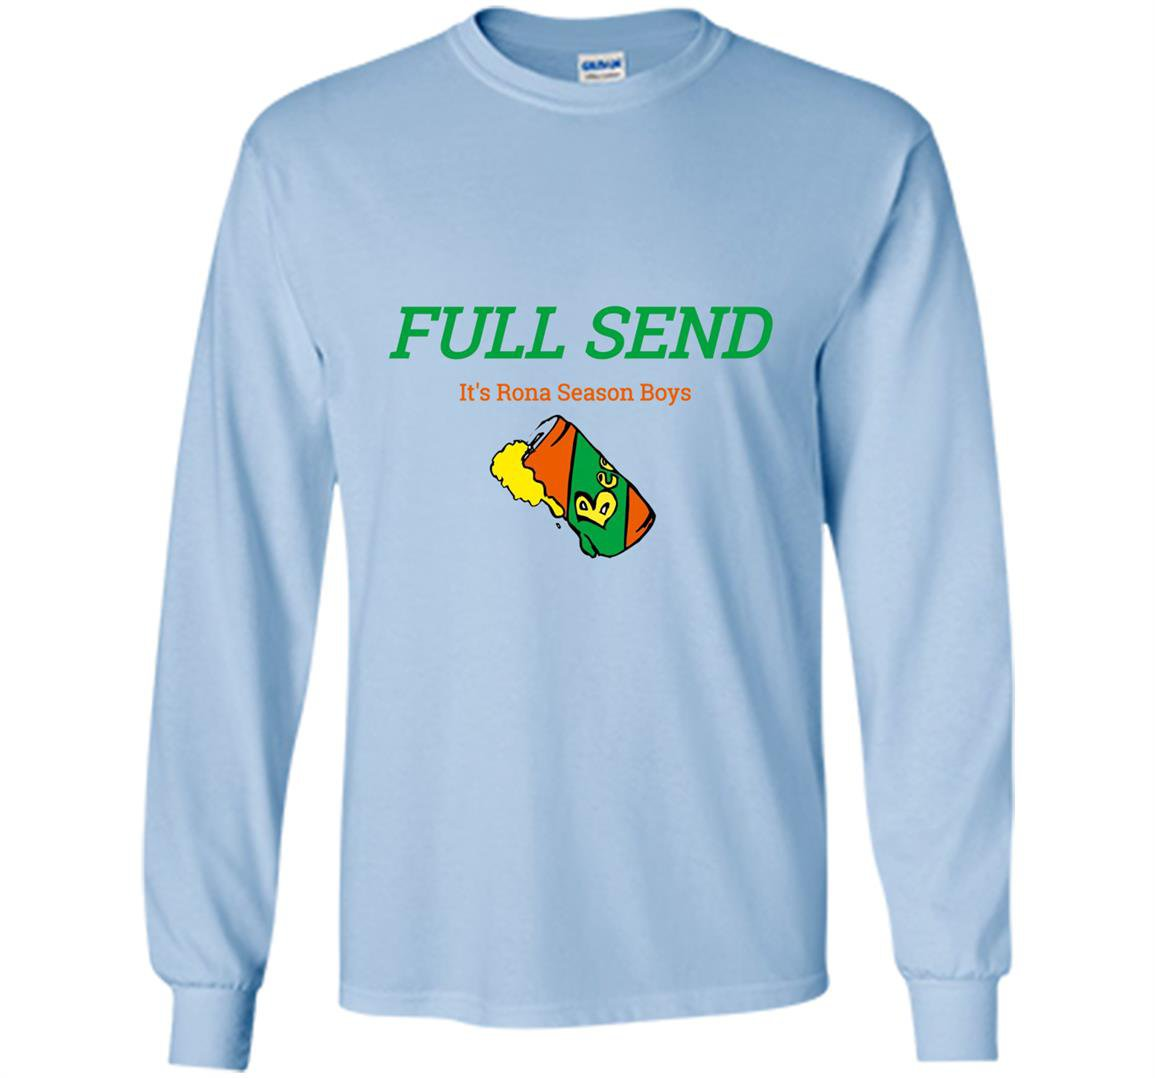 Full send rona season boys Long Sleeve